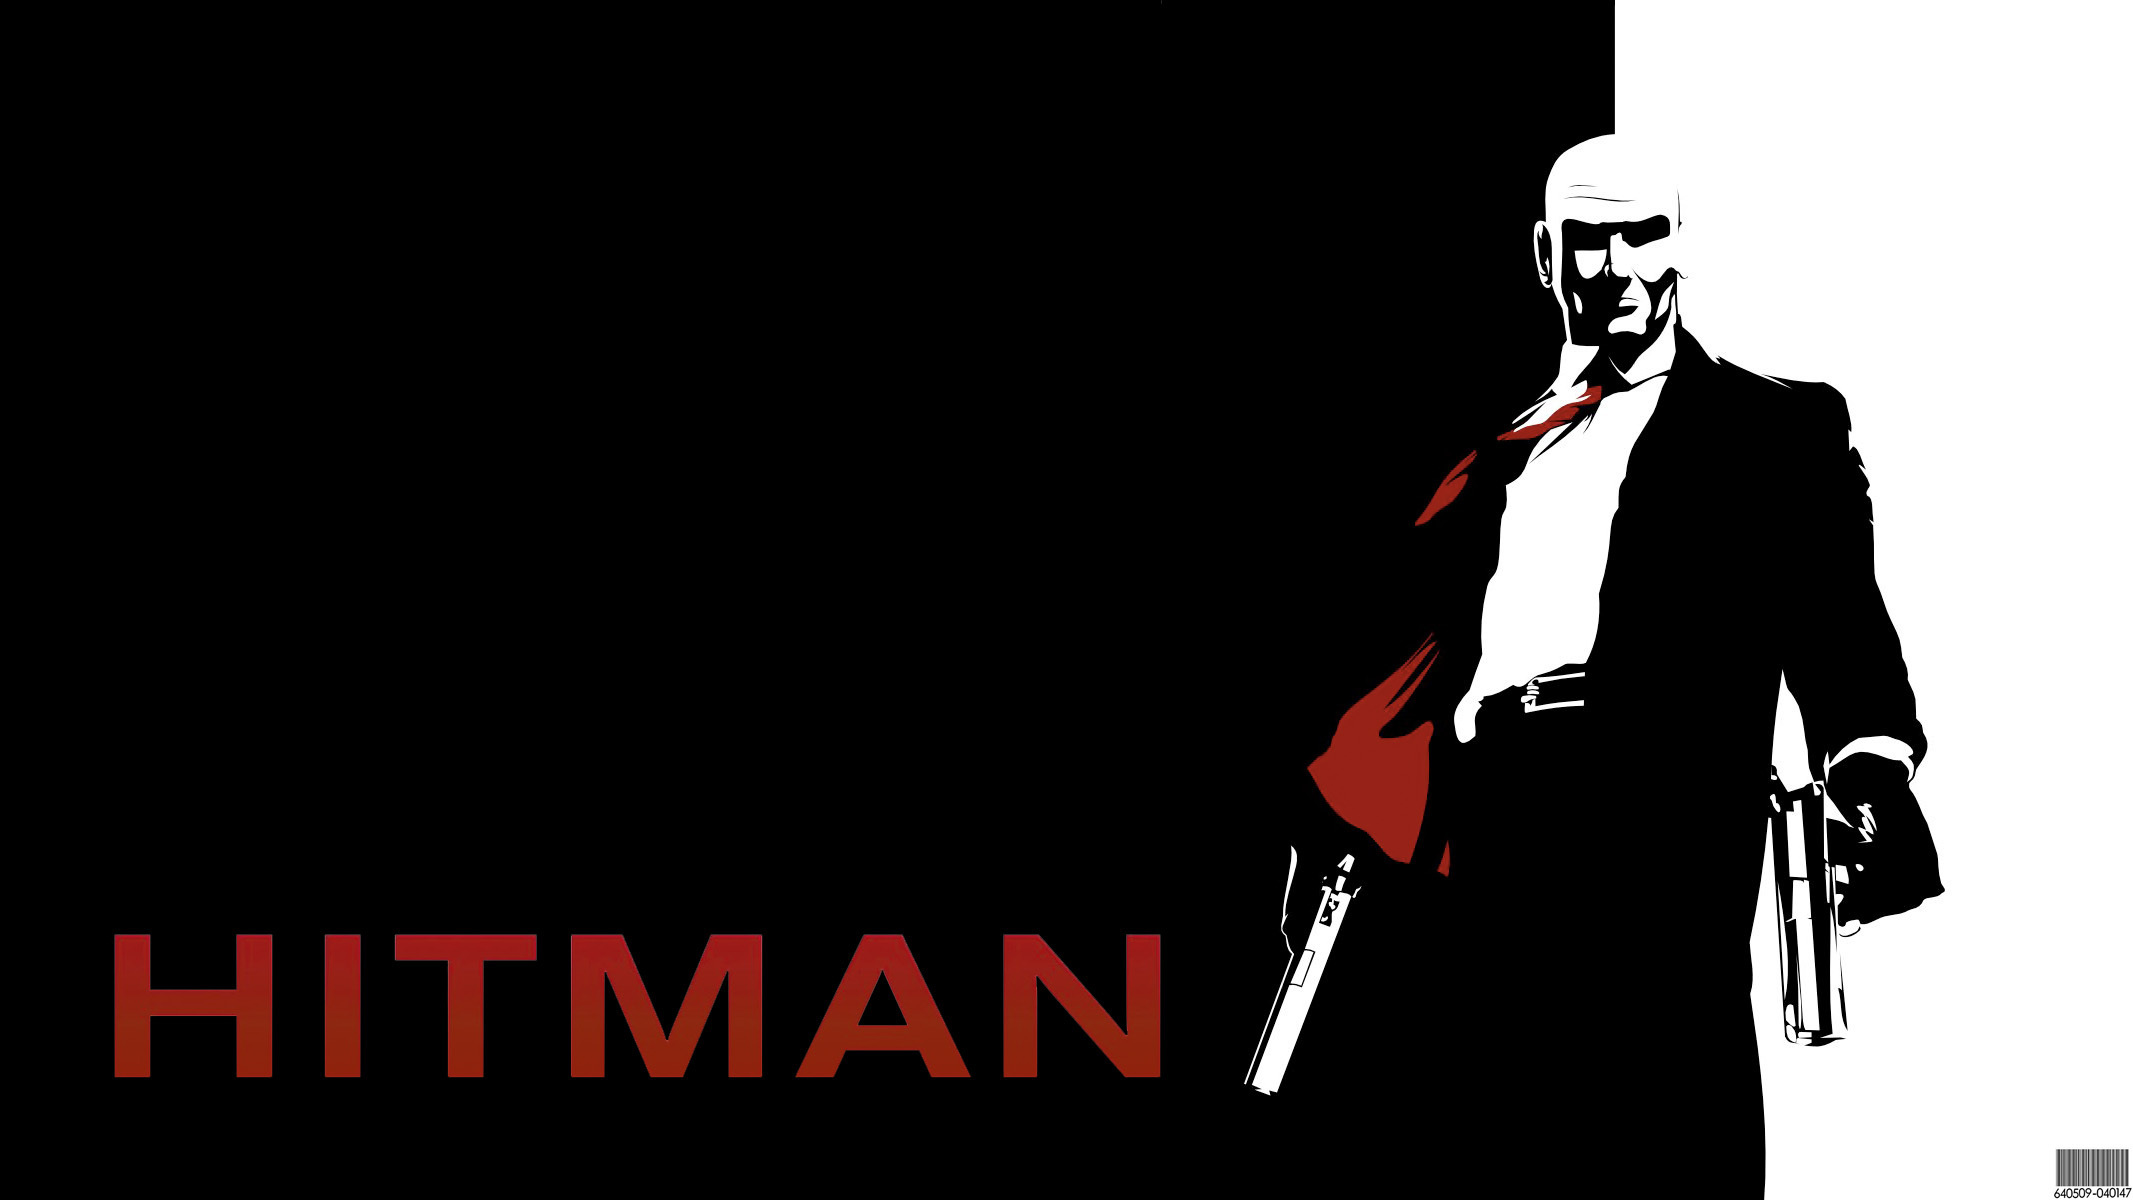 Beautiful Wallpaper Of Hitman 2 Silent Assassin Photo Of Hitman